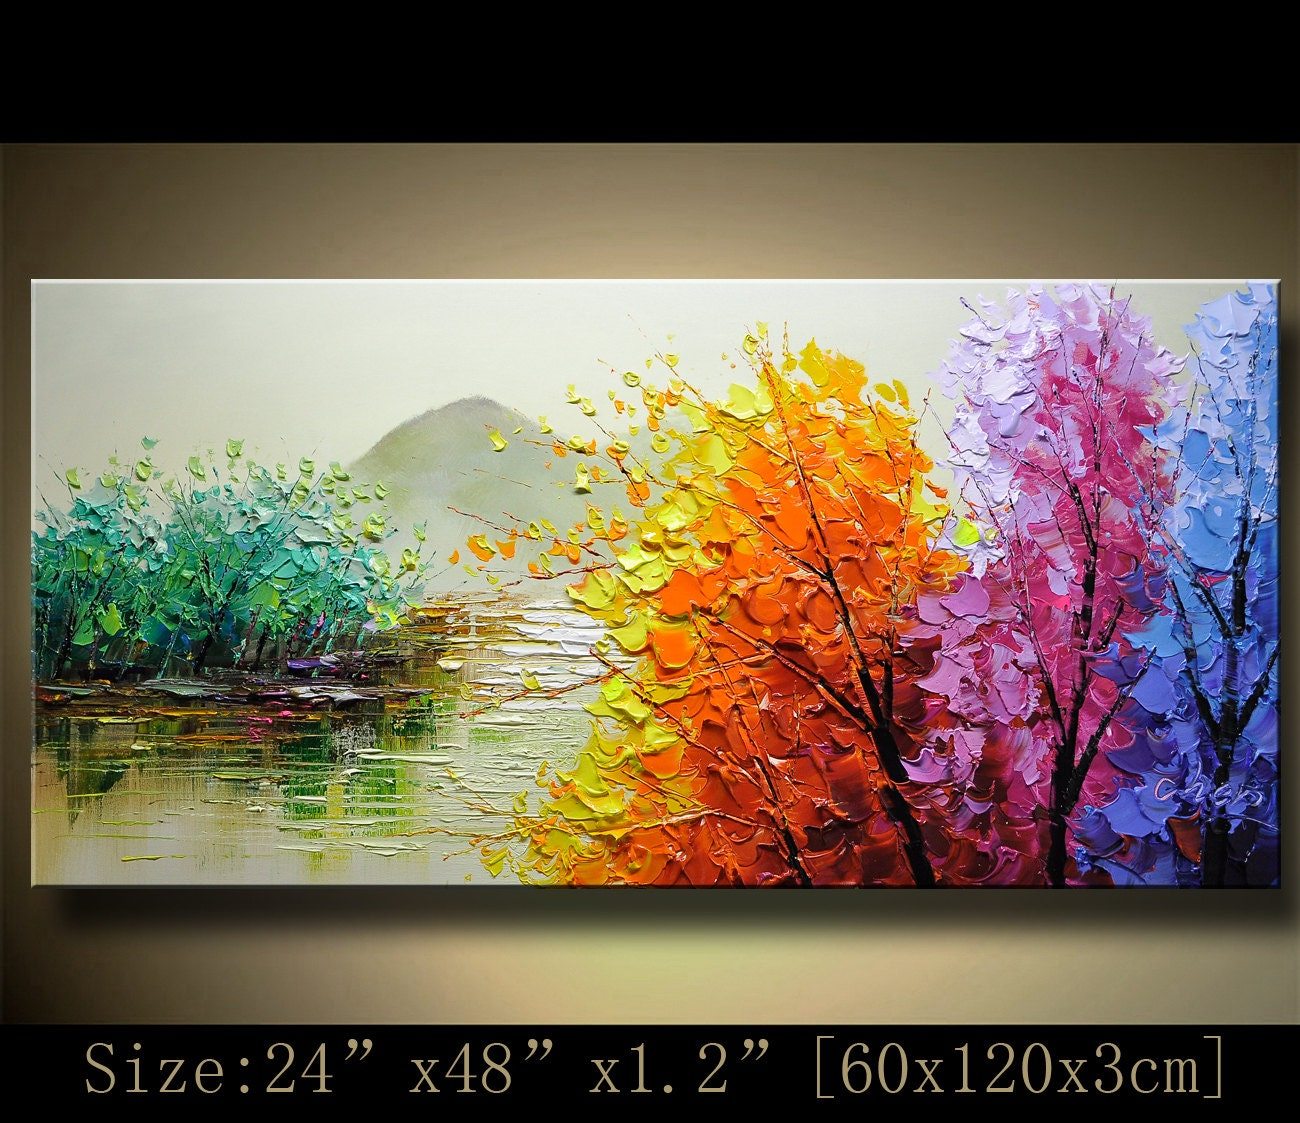 How To Do Knife Painting On Canvas